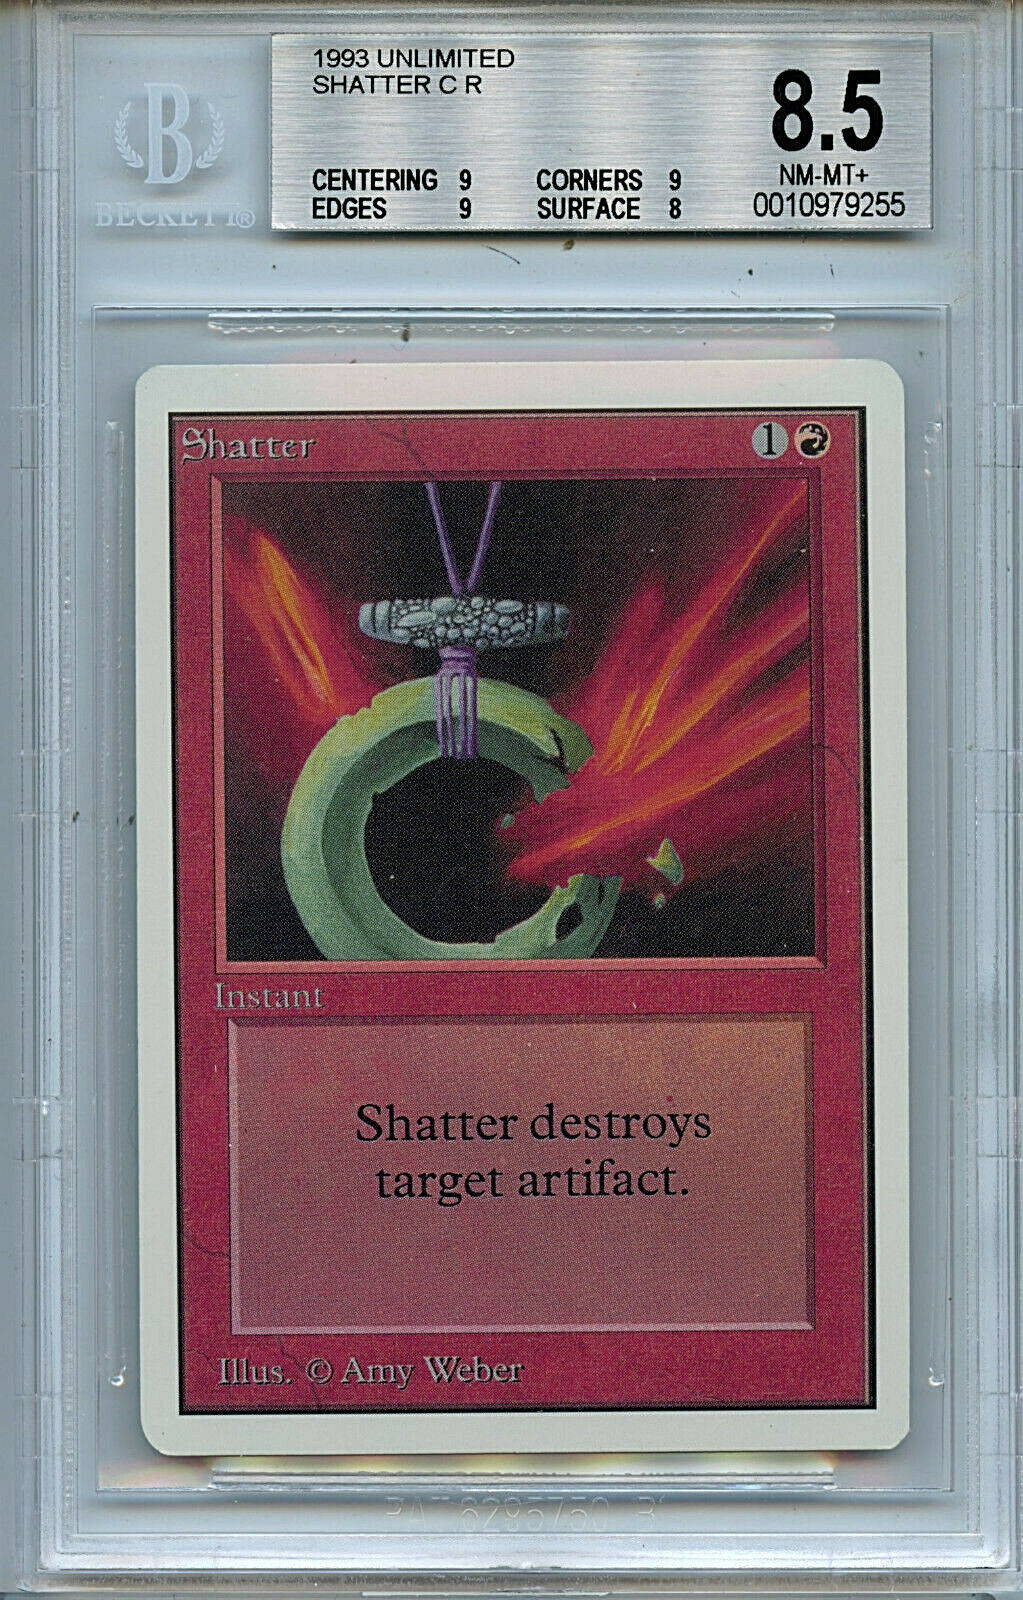 MTG Unlimited Unlimited Unlimited Shatter BGS 8.5 NM-MT+ card Magic Amricons 9255 426c50